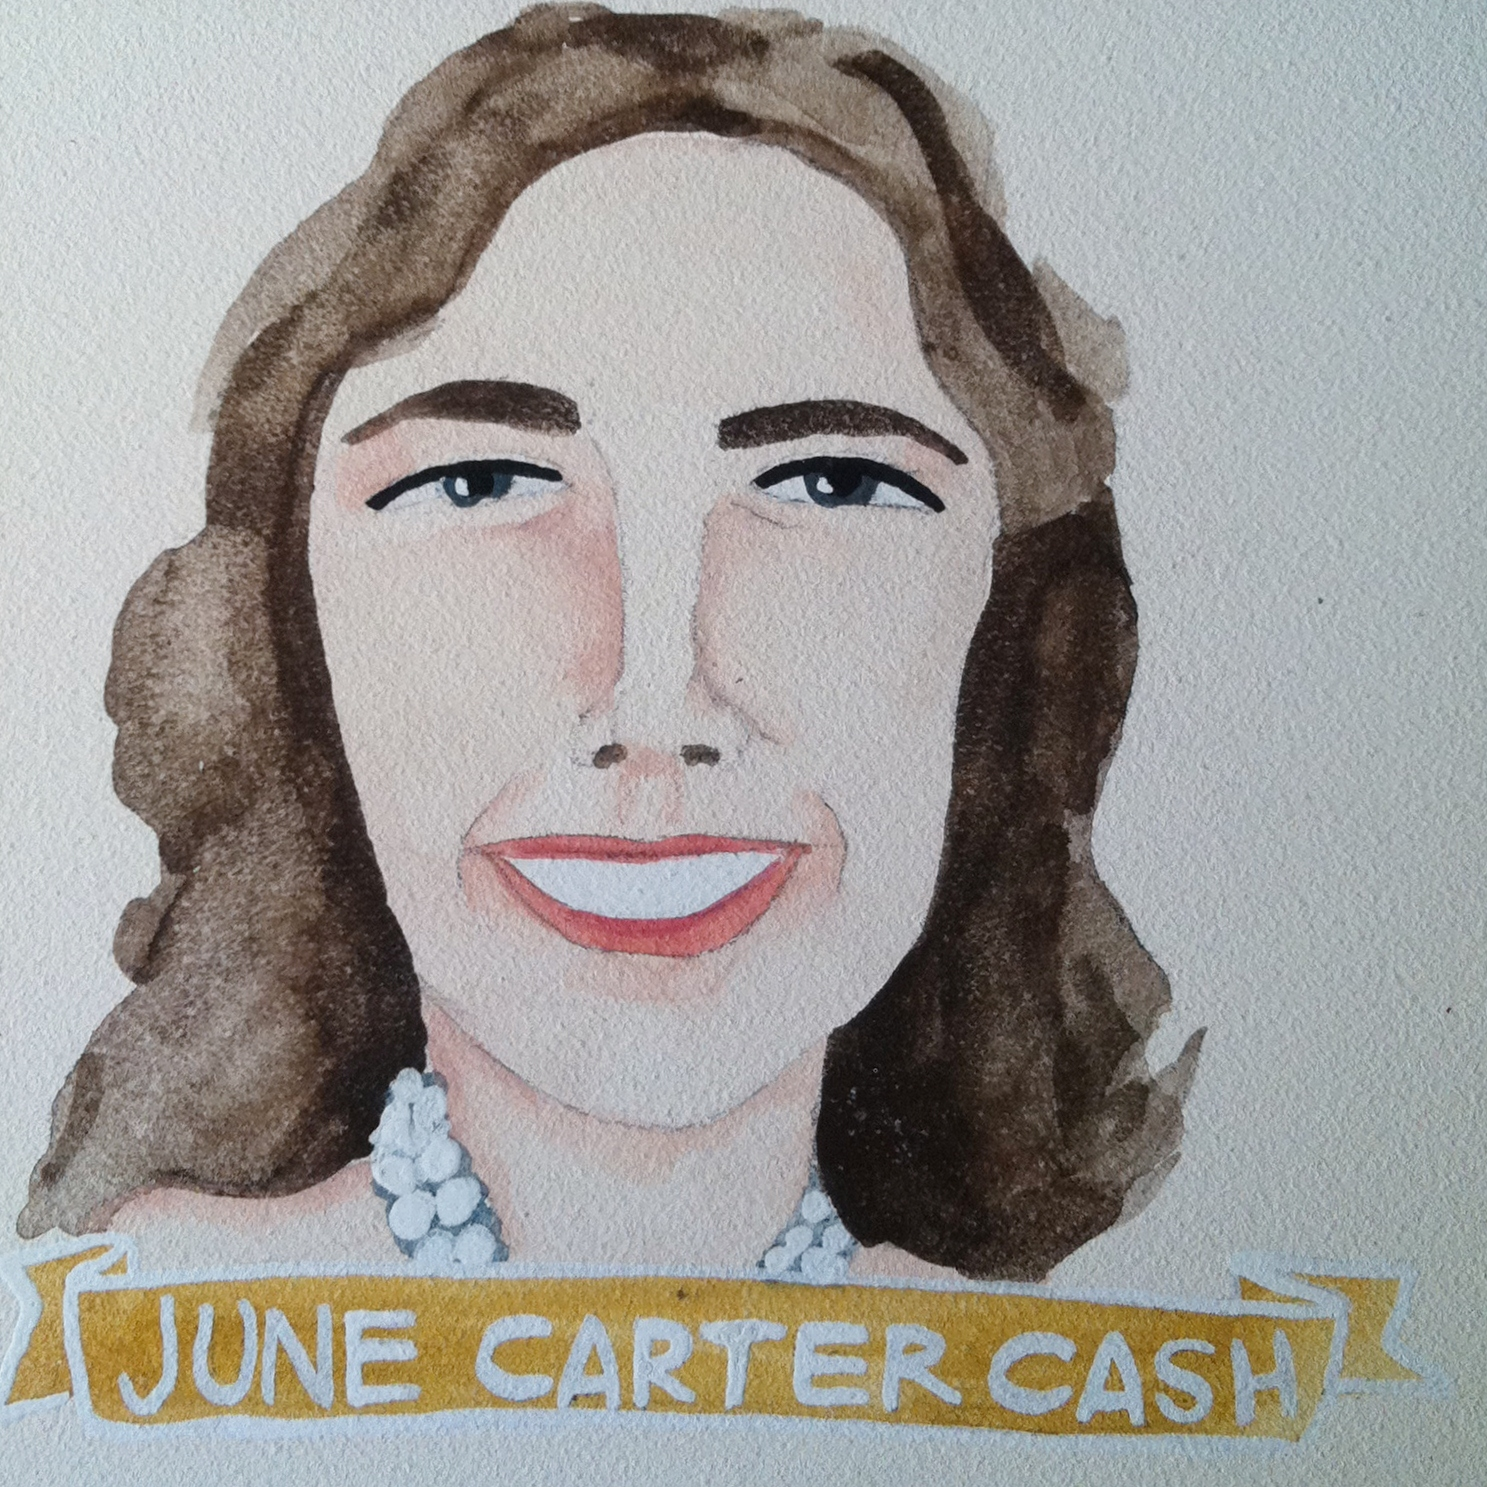 Talent Loves Company at Barbara Archer Gallery: 365 portraits by Lydia Walls - June Carter Cash